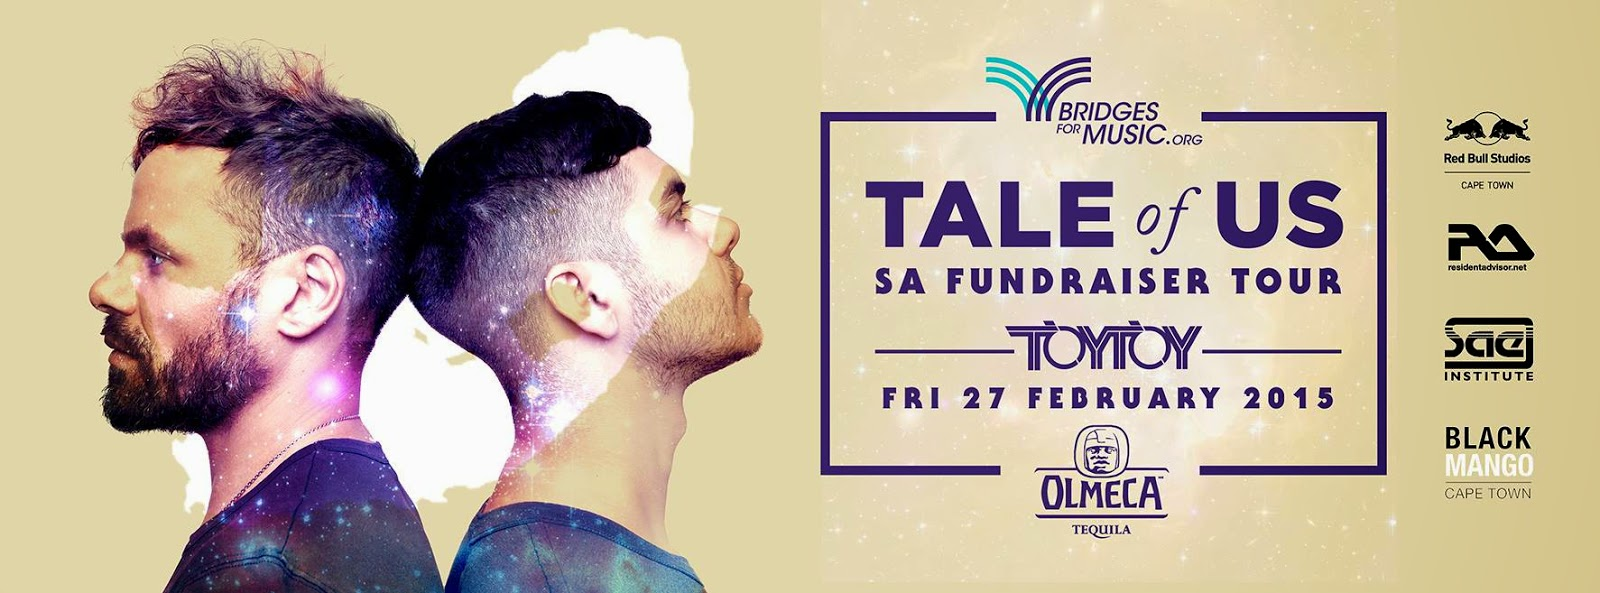 tale of us south africa tour 2015